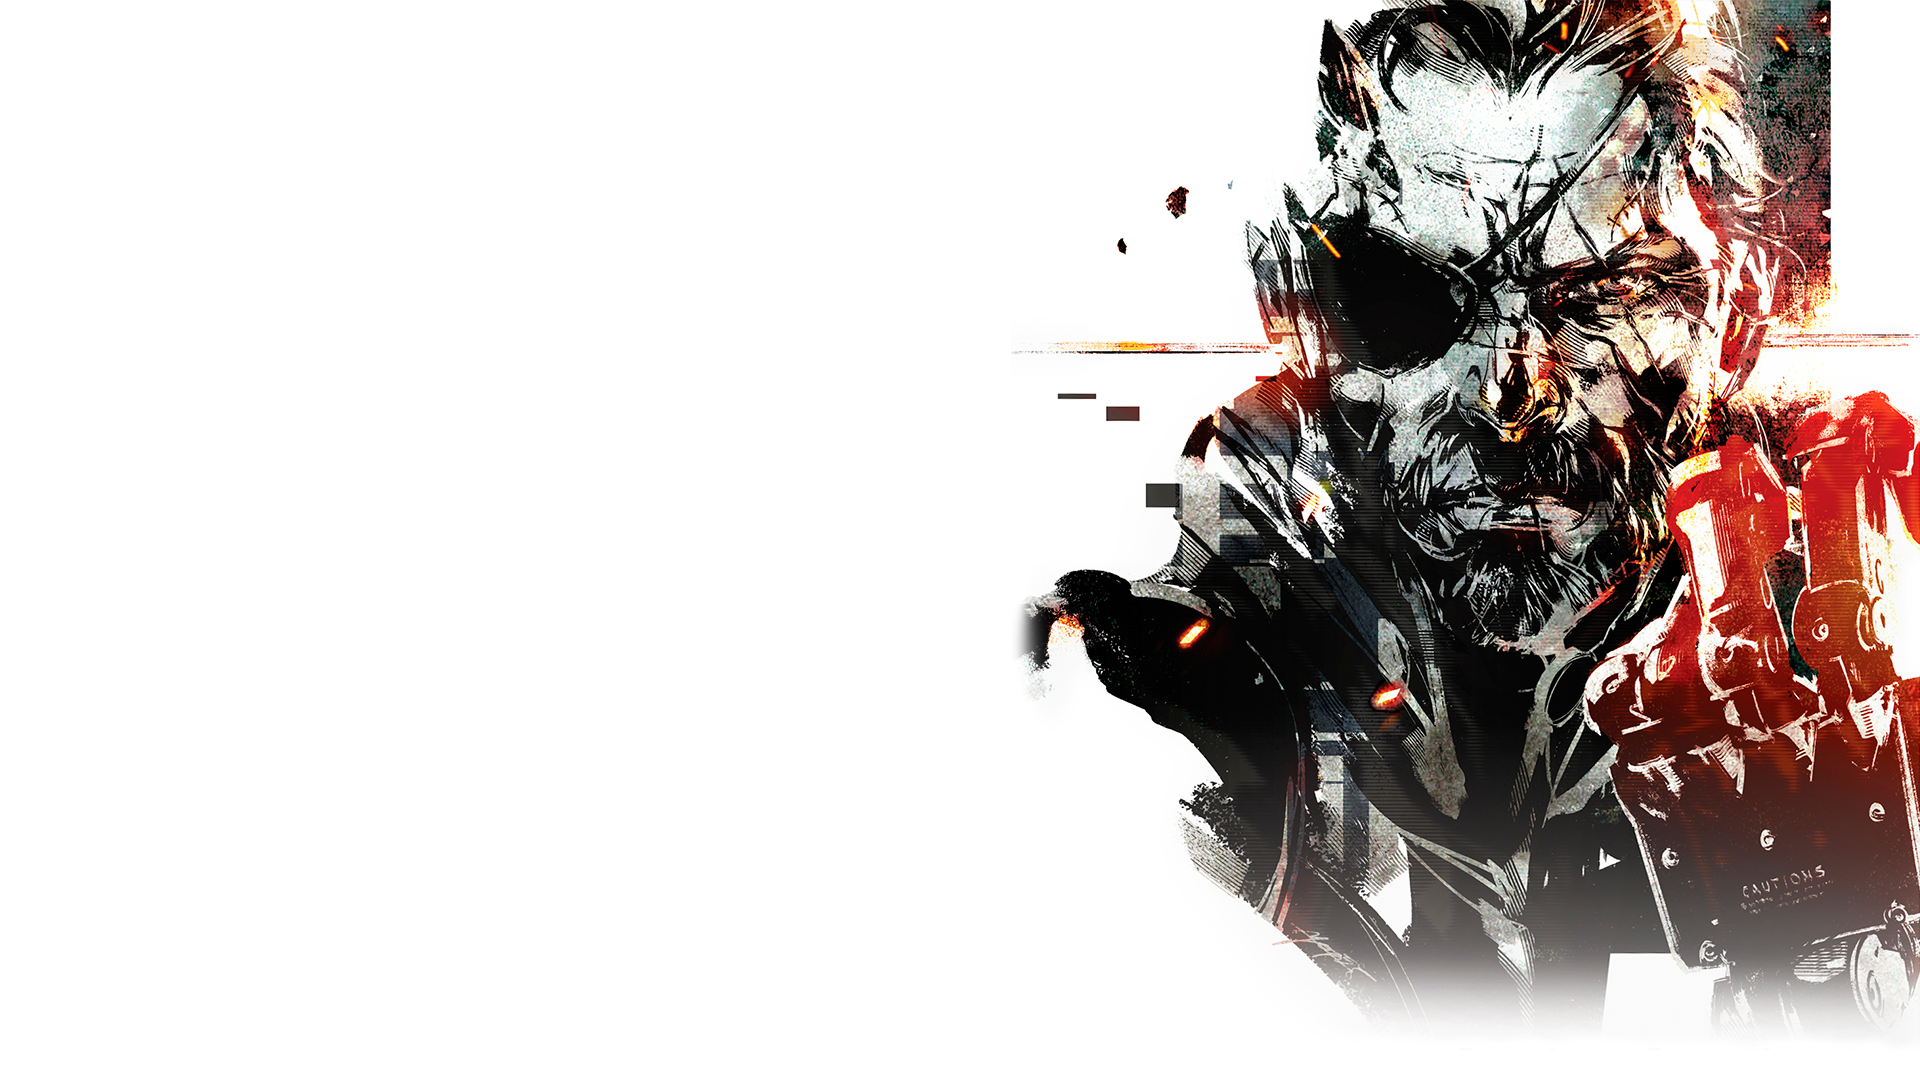 Metal gear solid v the phantom pain backgrounds pictures images - Mgs 5 wallpaper ...